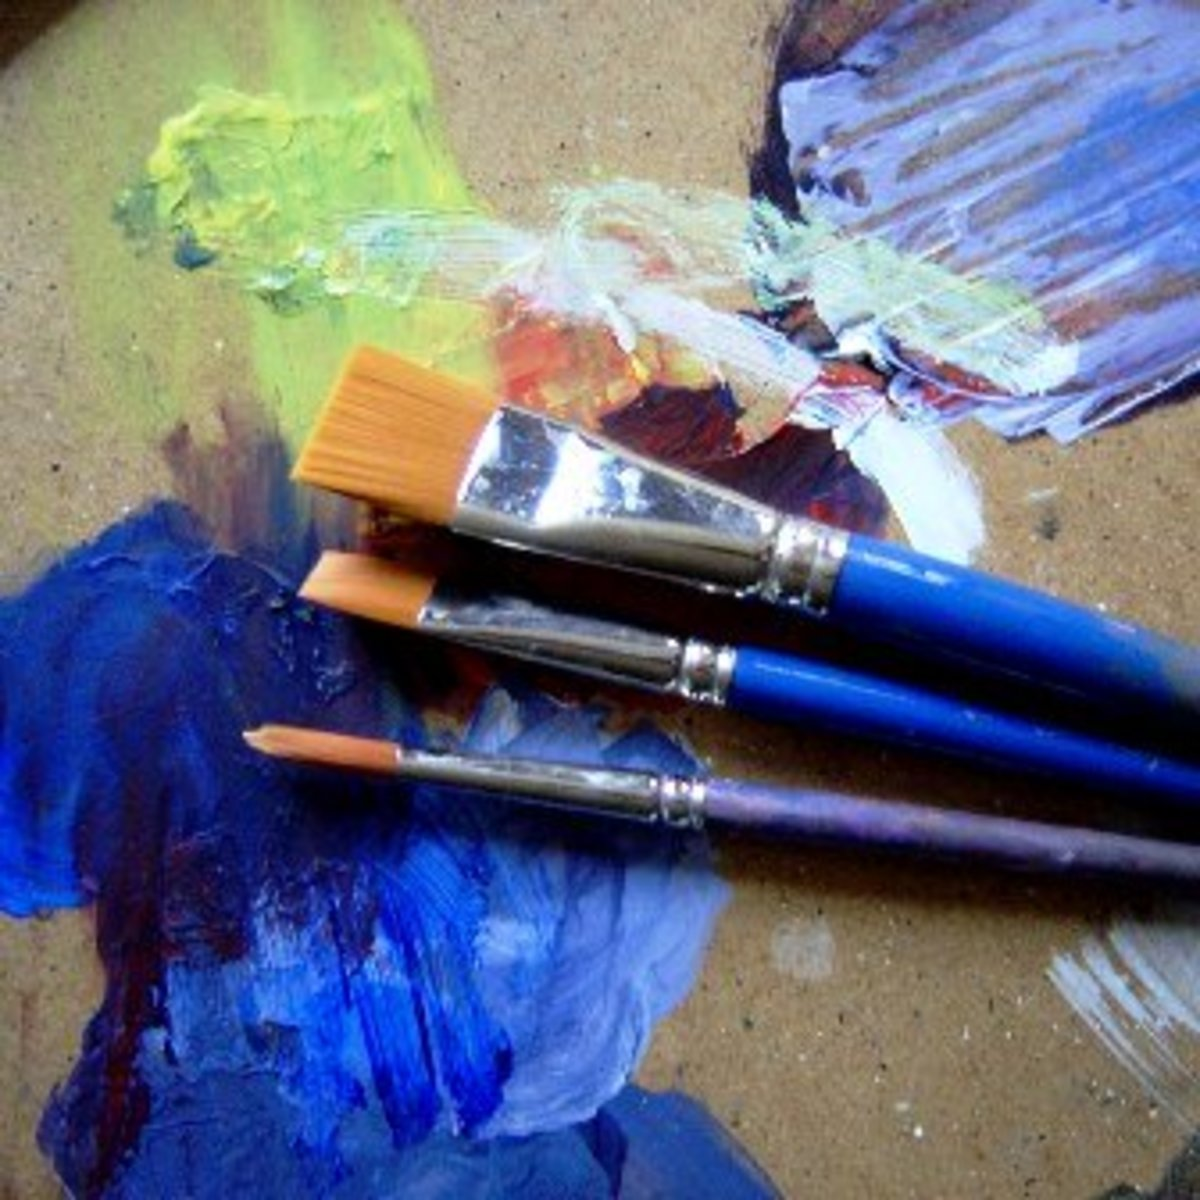 Oil Painting for Beginners - Tools and Materials